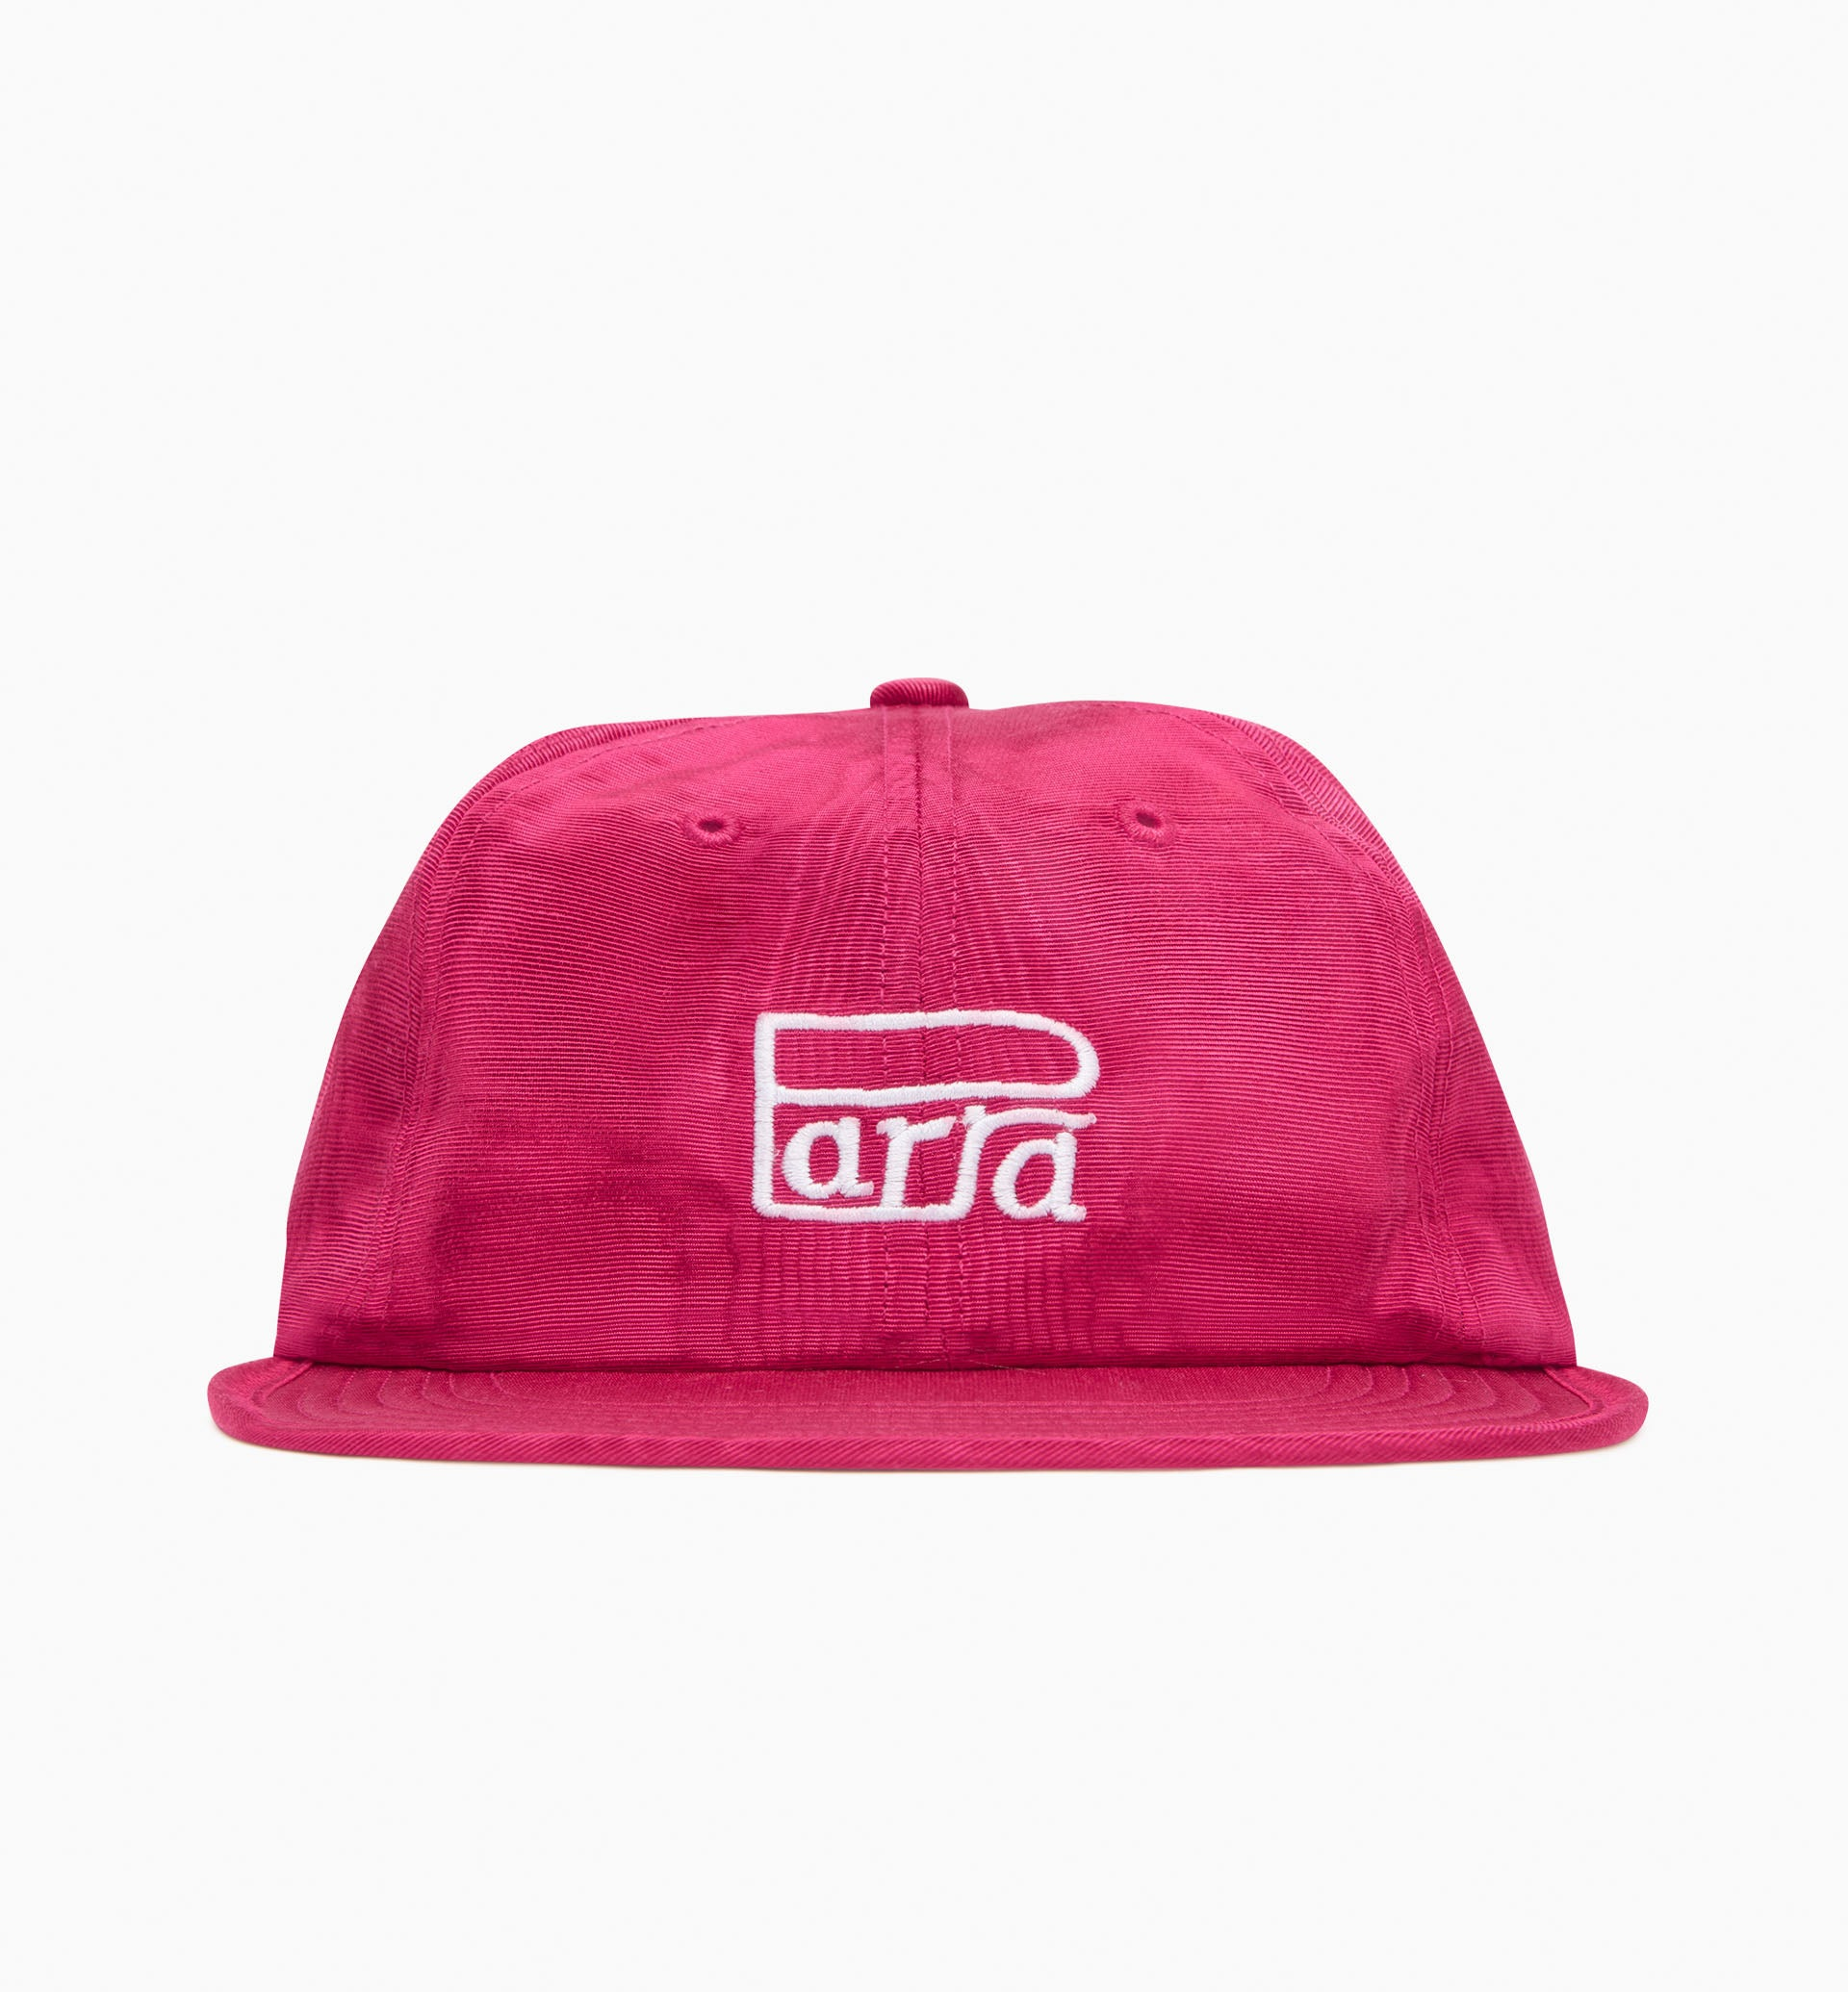 Parra - race logo 6 panel hat